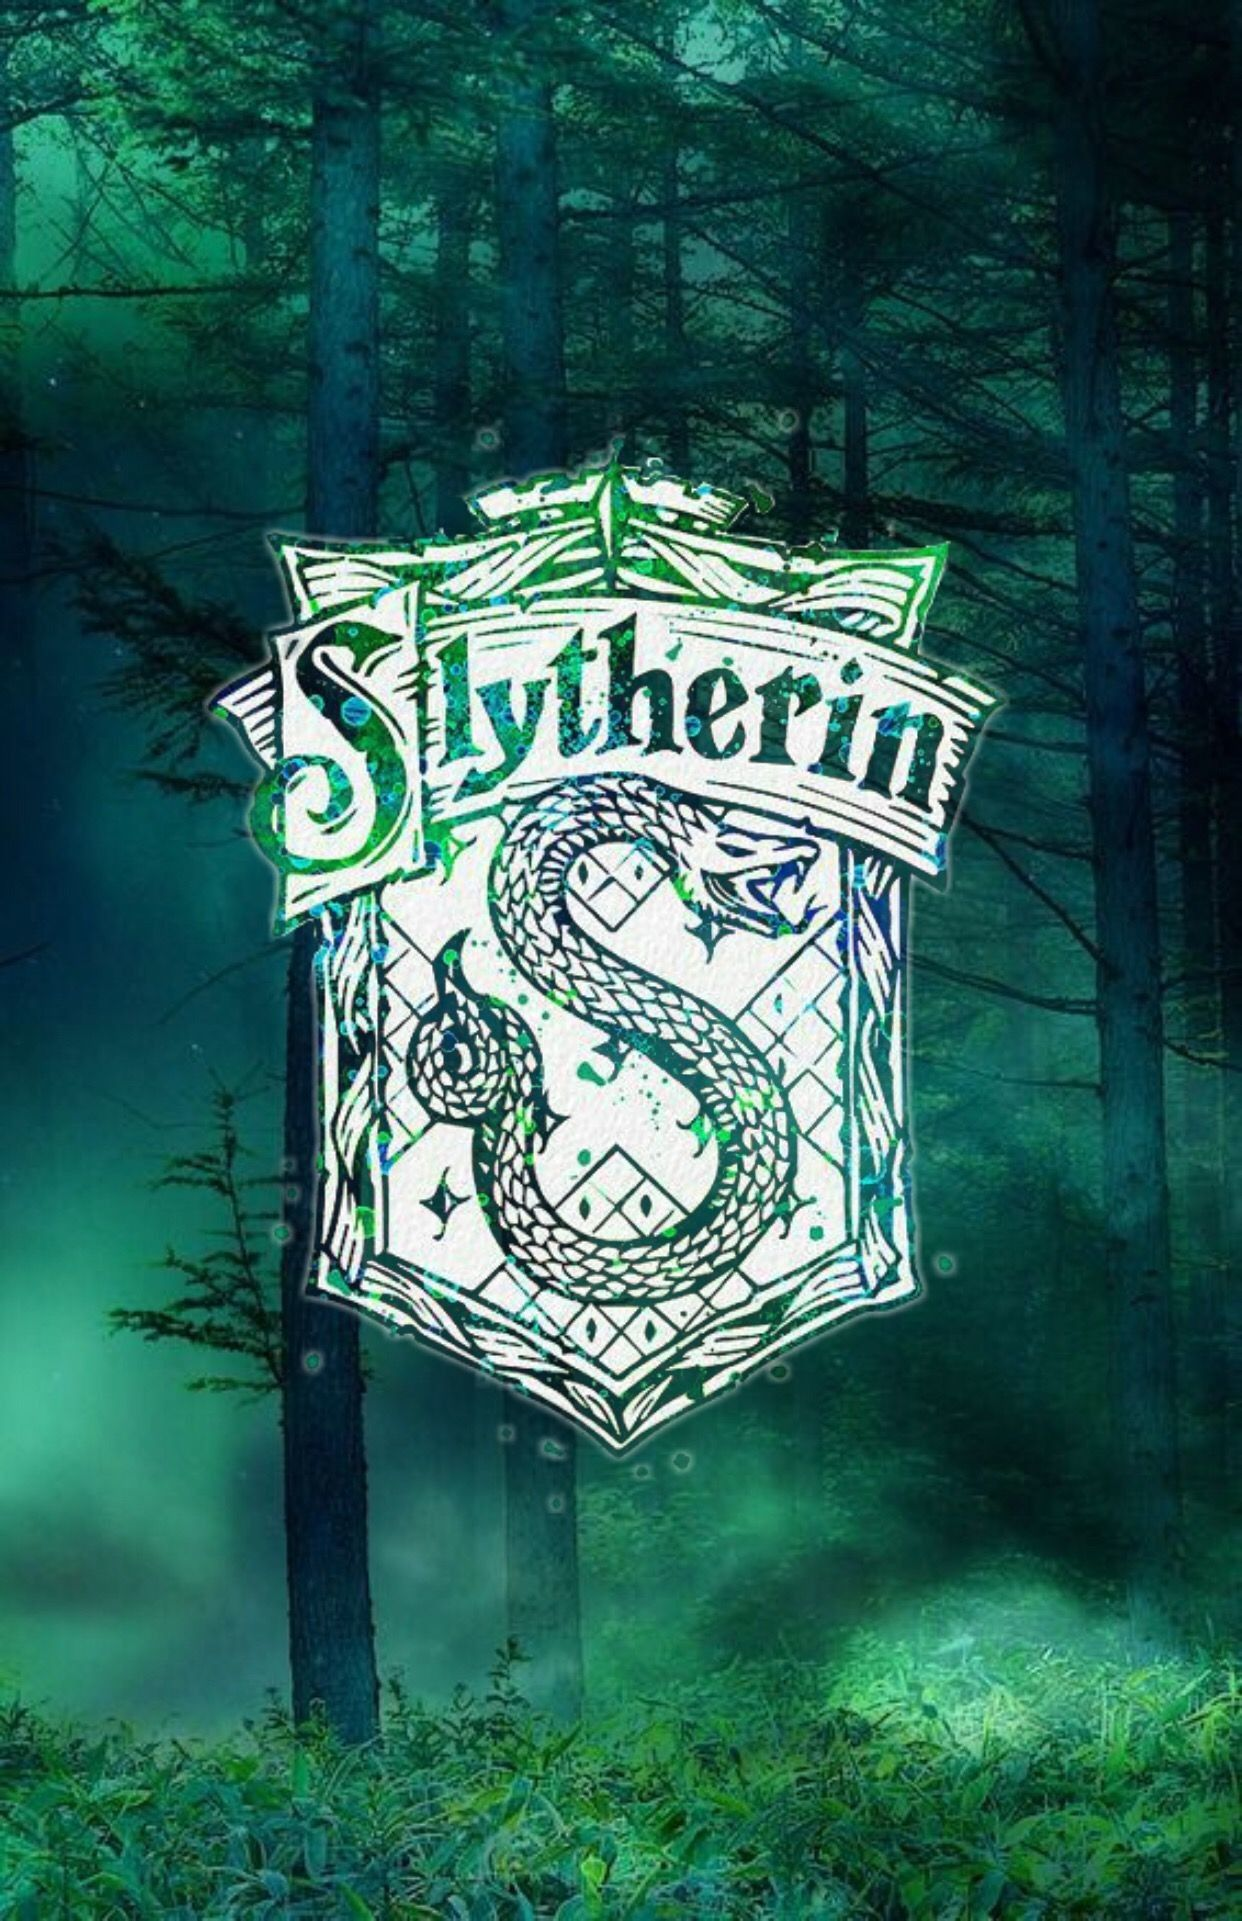 80 Slytherin Iphone Wallpapers On Wallpaperplay Harry Potter Iphone Harry Potter Iphone Wallpaper Harry Potter Wallpaper